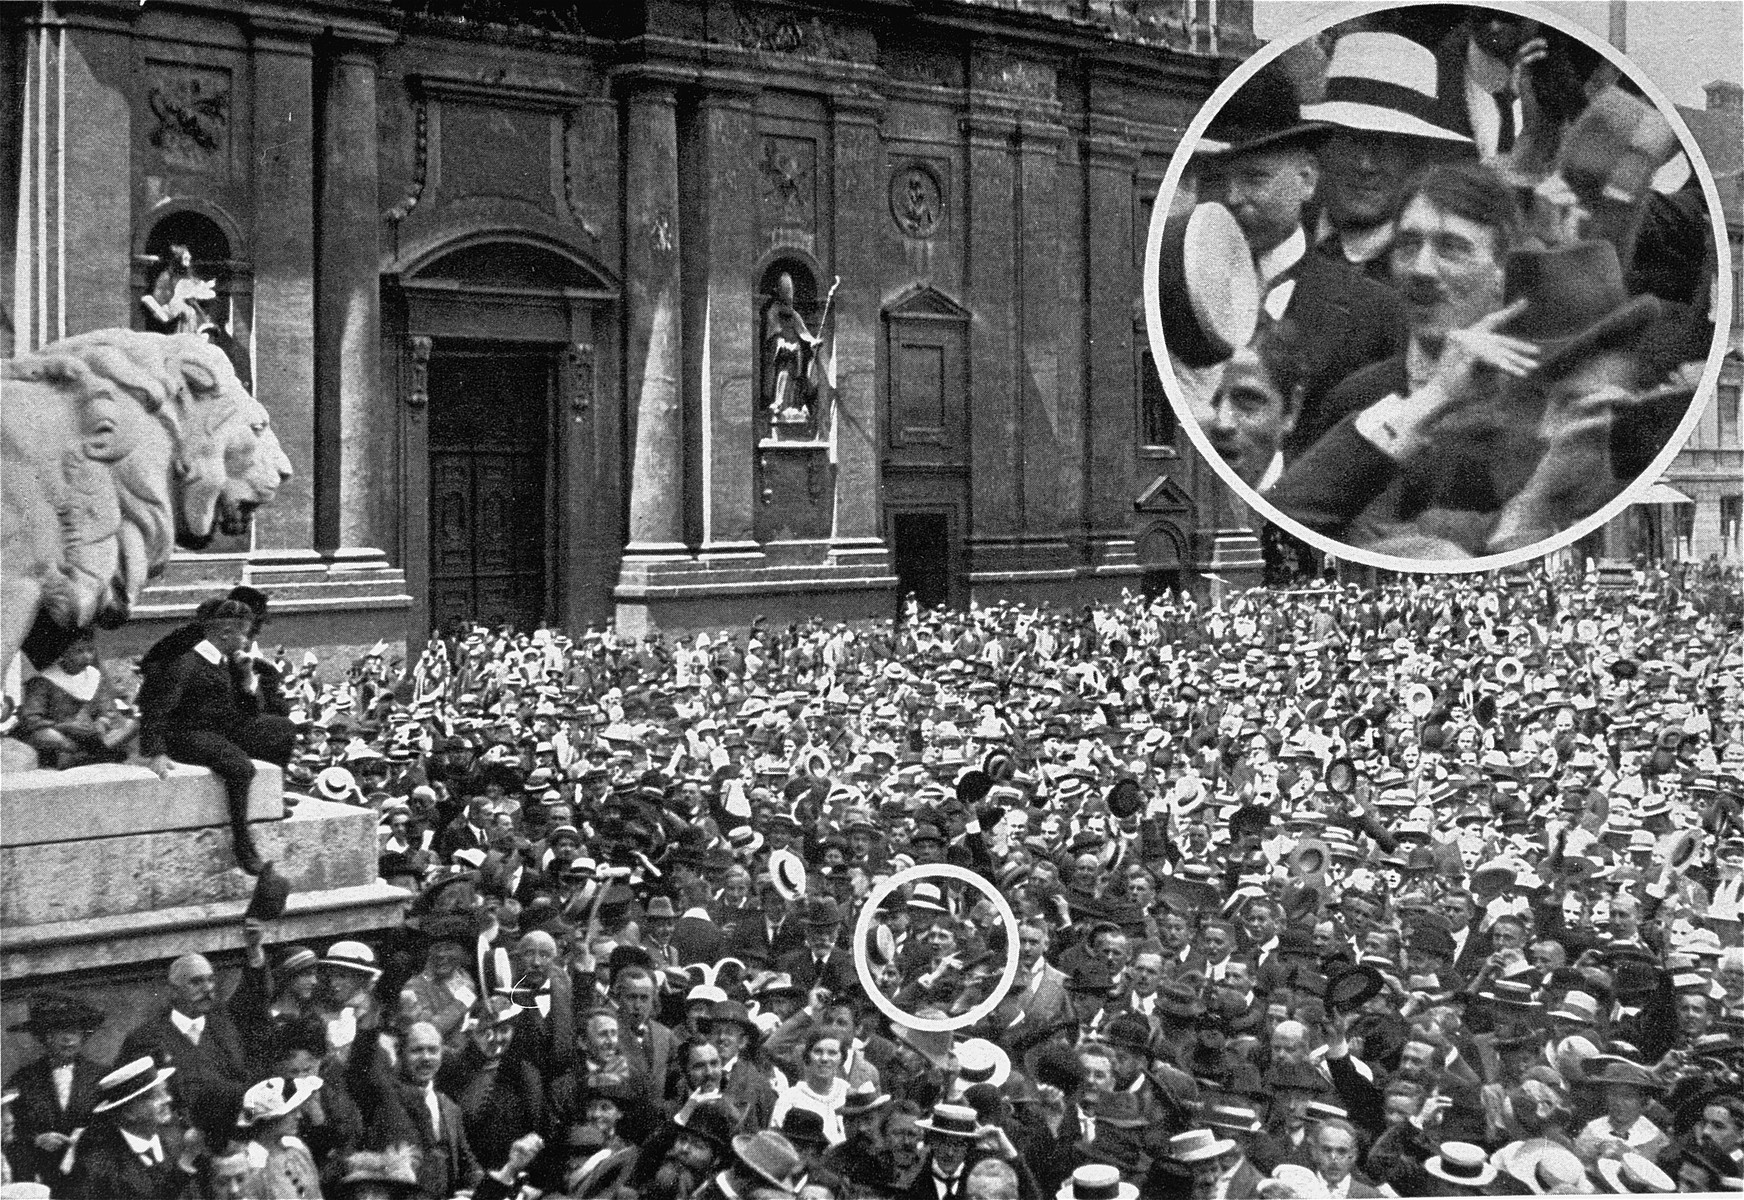 Adolf Hitler attends a rally in the Munich Odeonsplatz to celebrate the declaration of war in 1914.